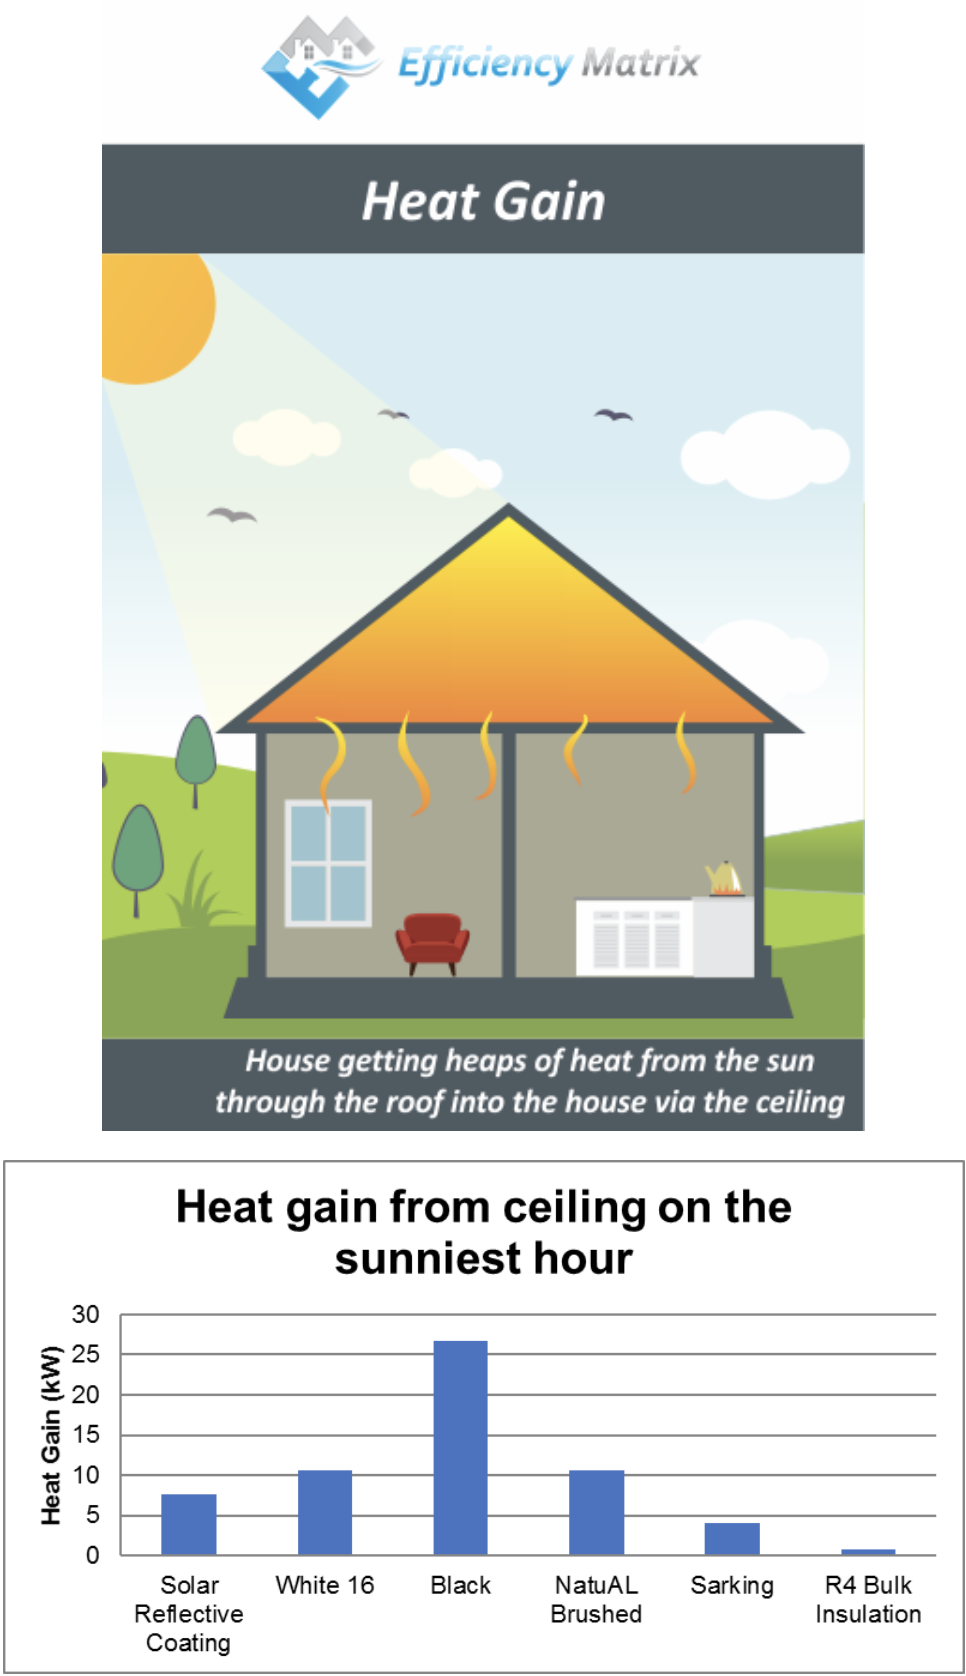 Busting the myth on solar thermal reflective paints, and